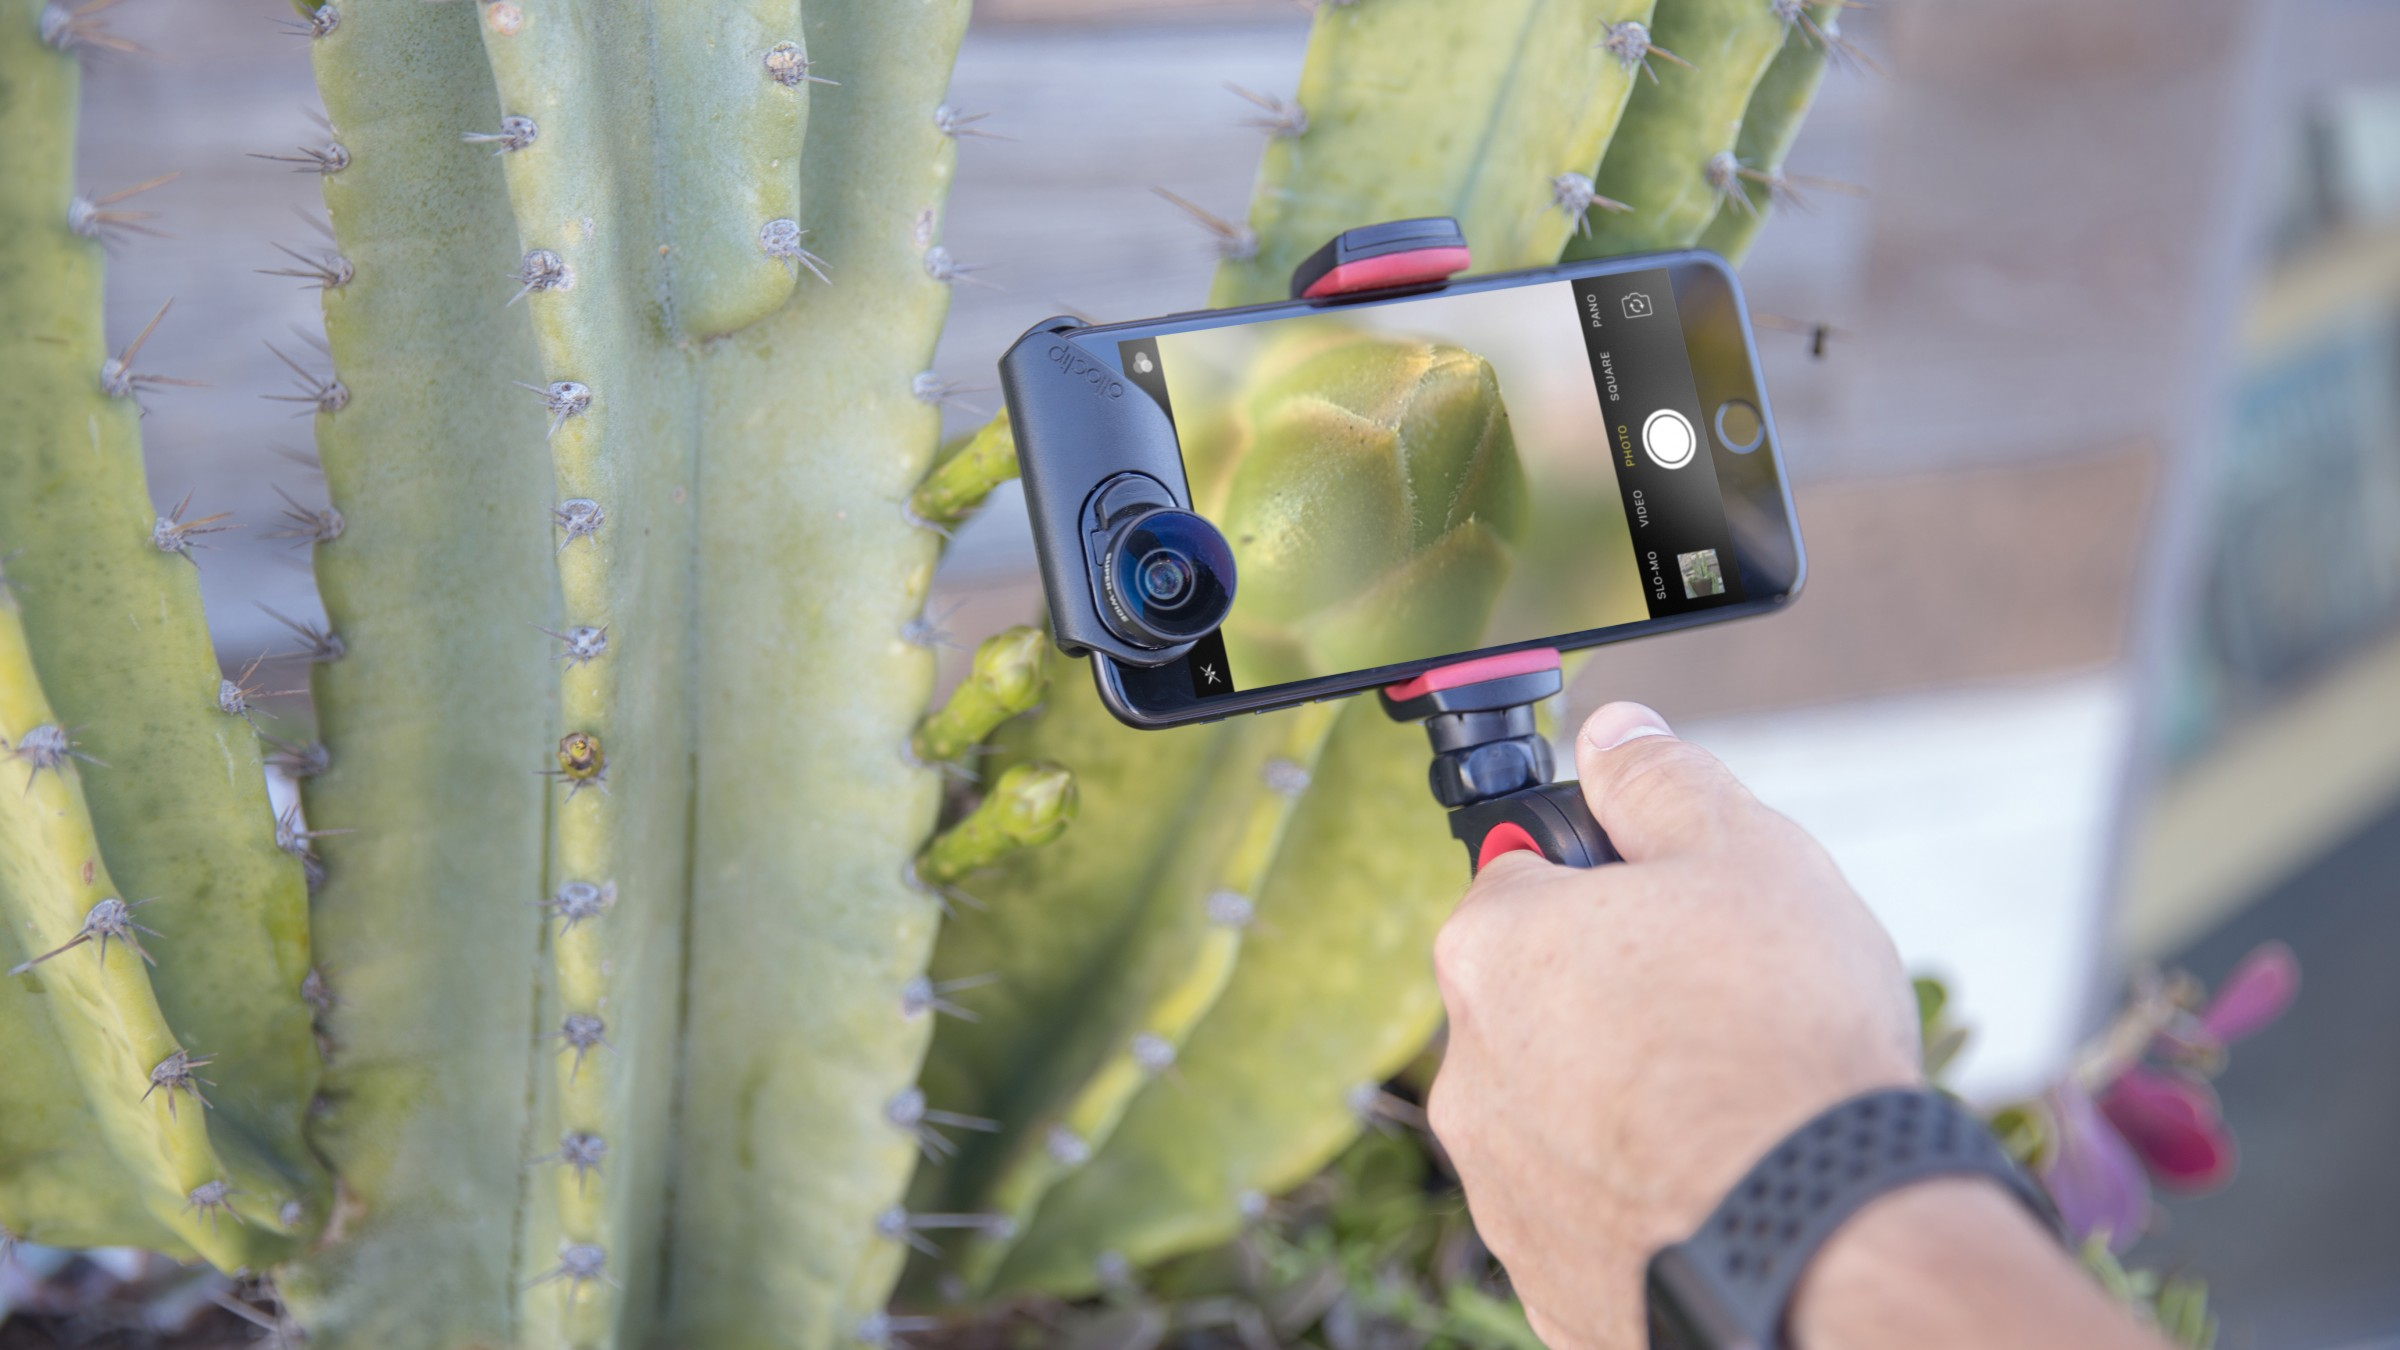 Get All Your iPhone Filming Accessories in One Handy Case for Only $200